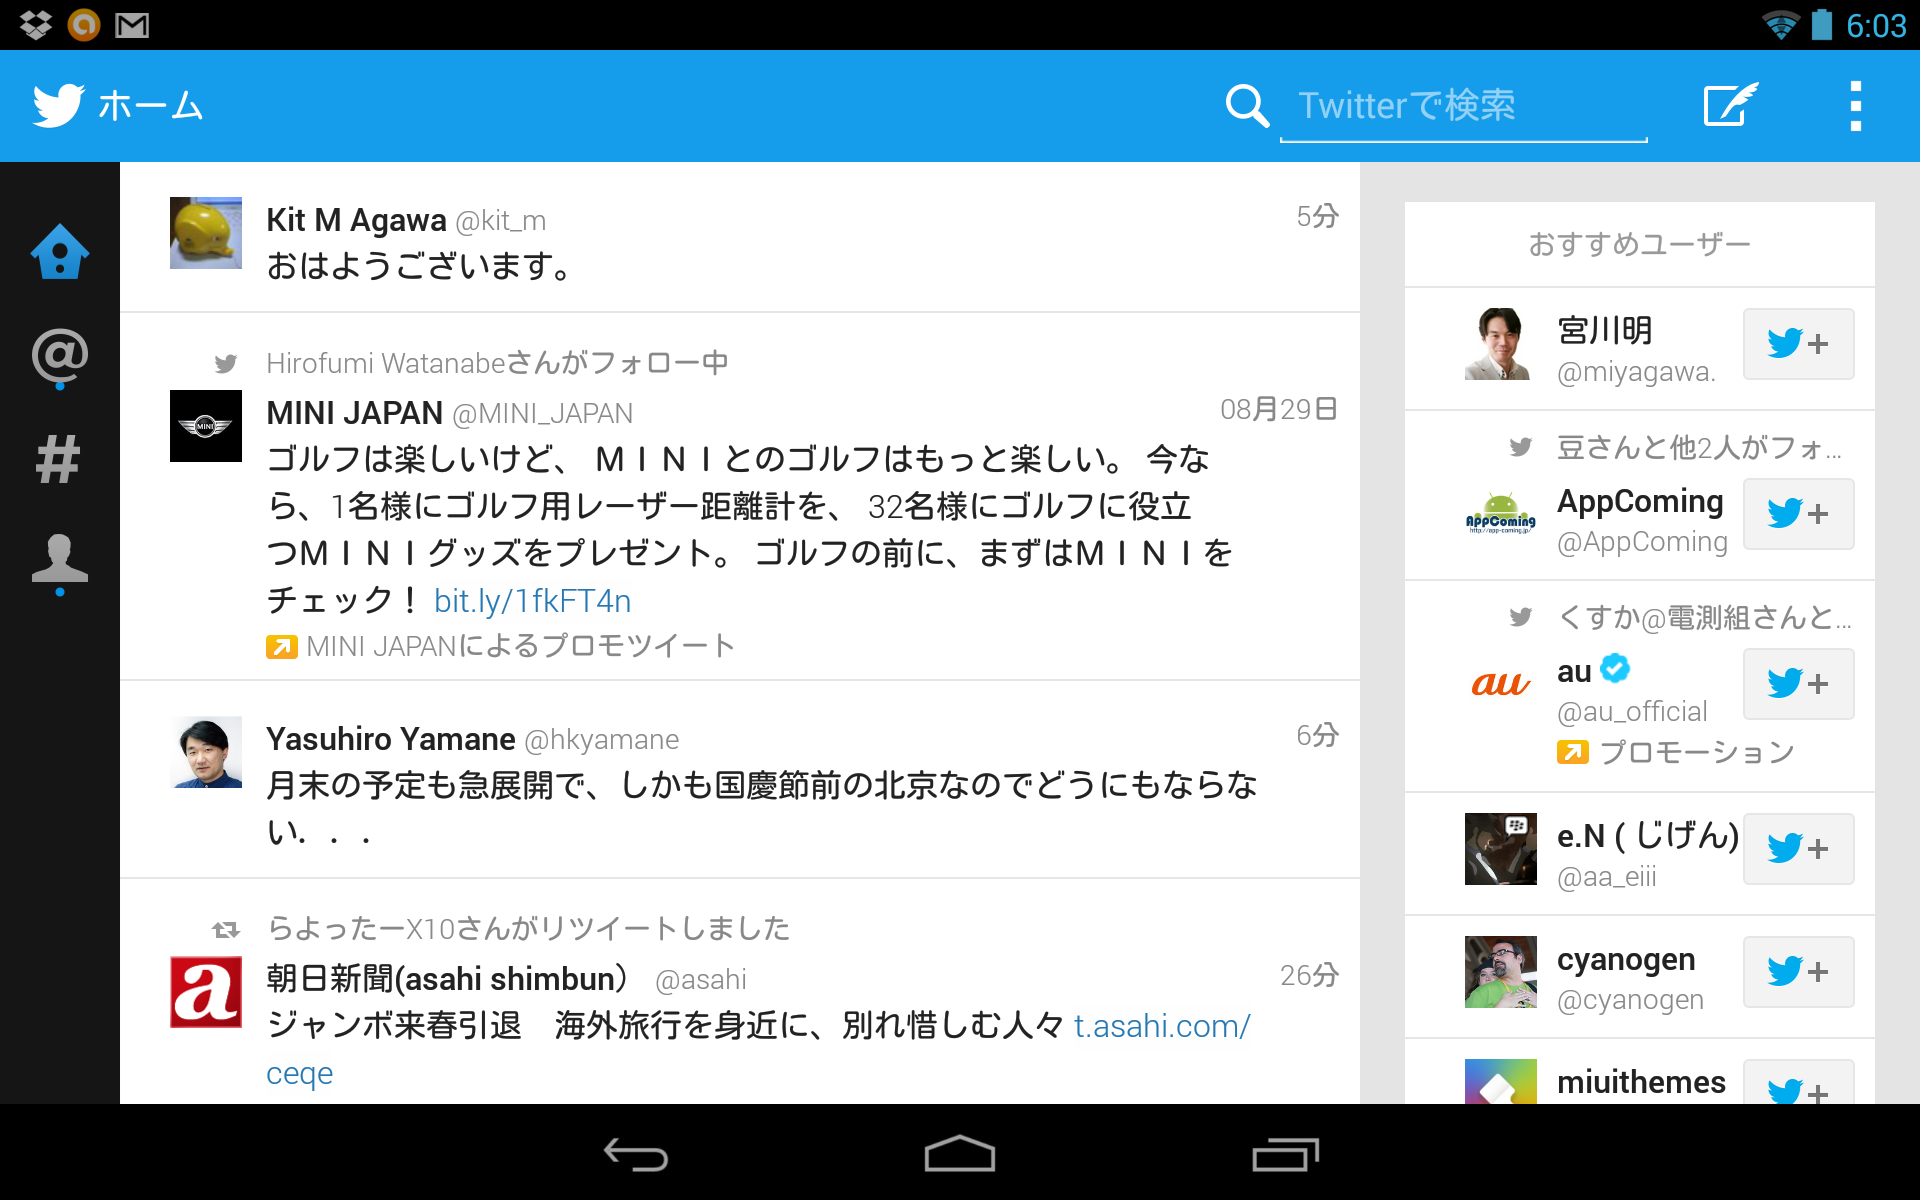 Screenshot_2013-09-09-06-03-47